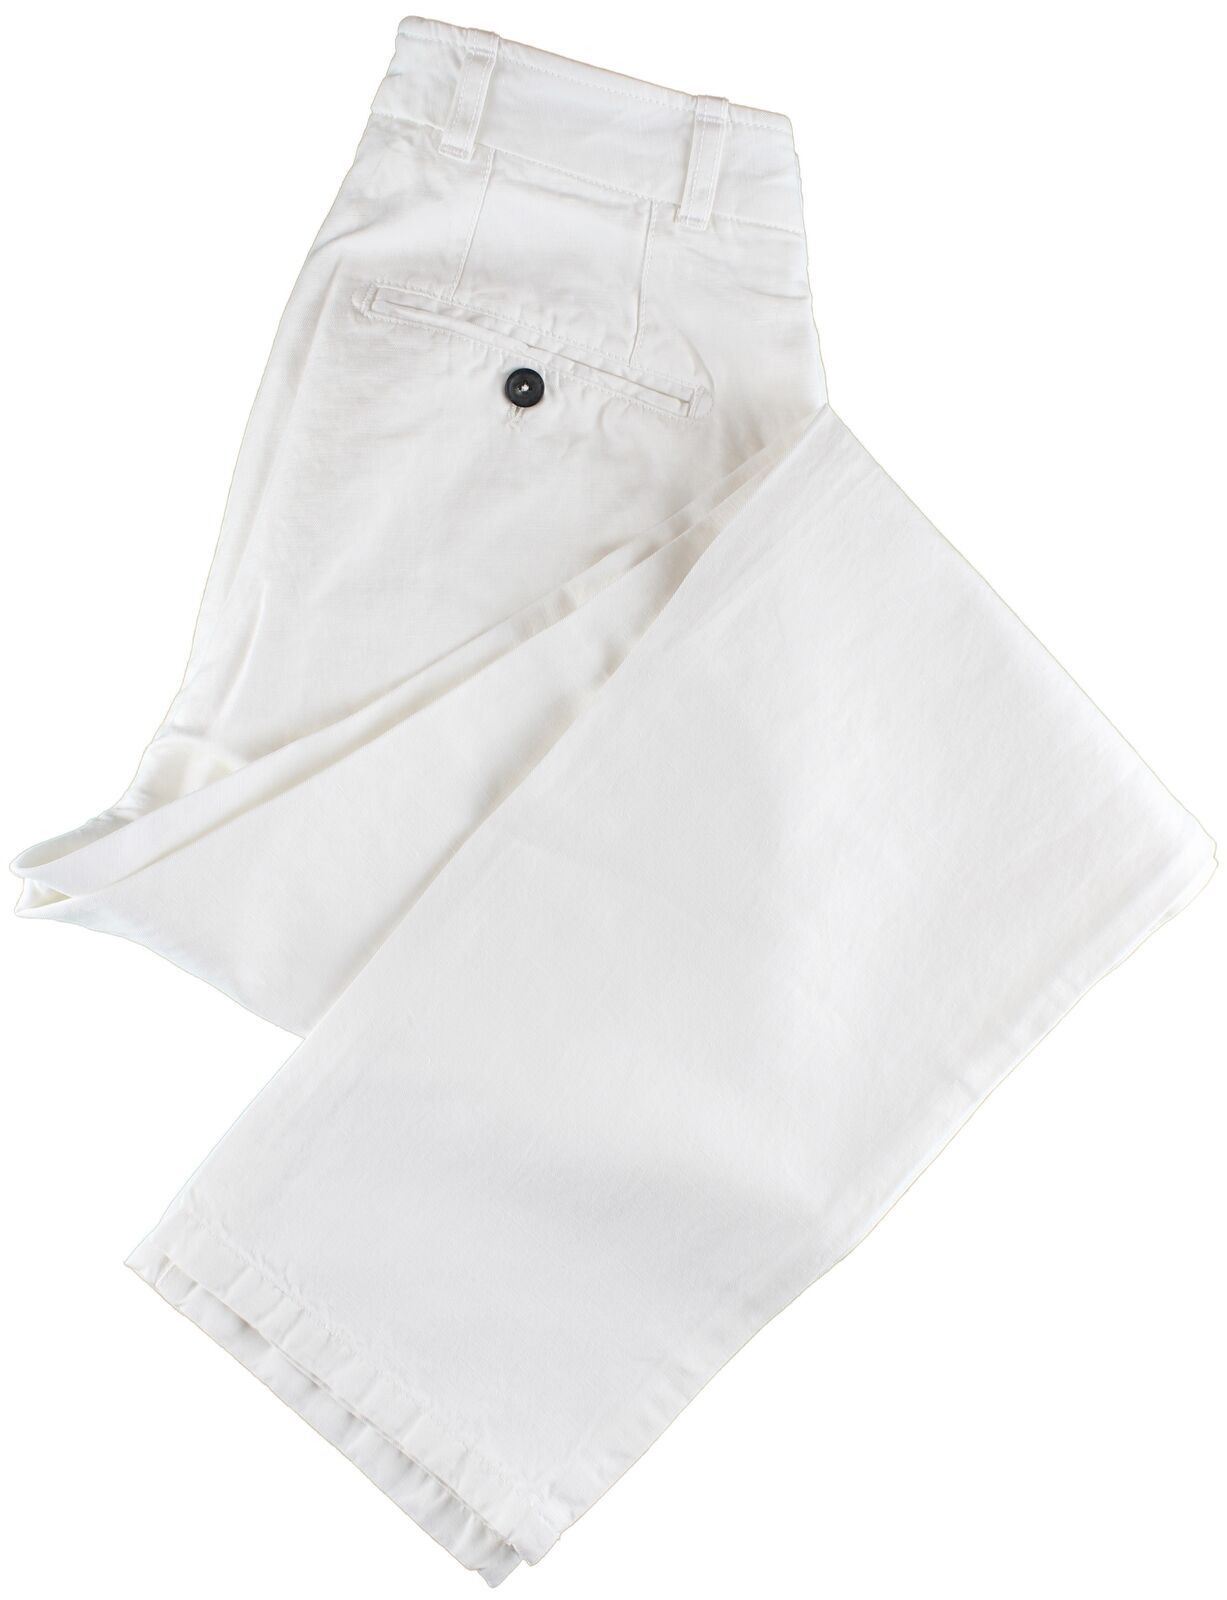 NWT EIDOS by ISAIA white casual pants Morgan  IT 46 US 30